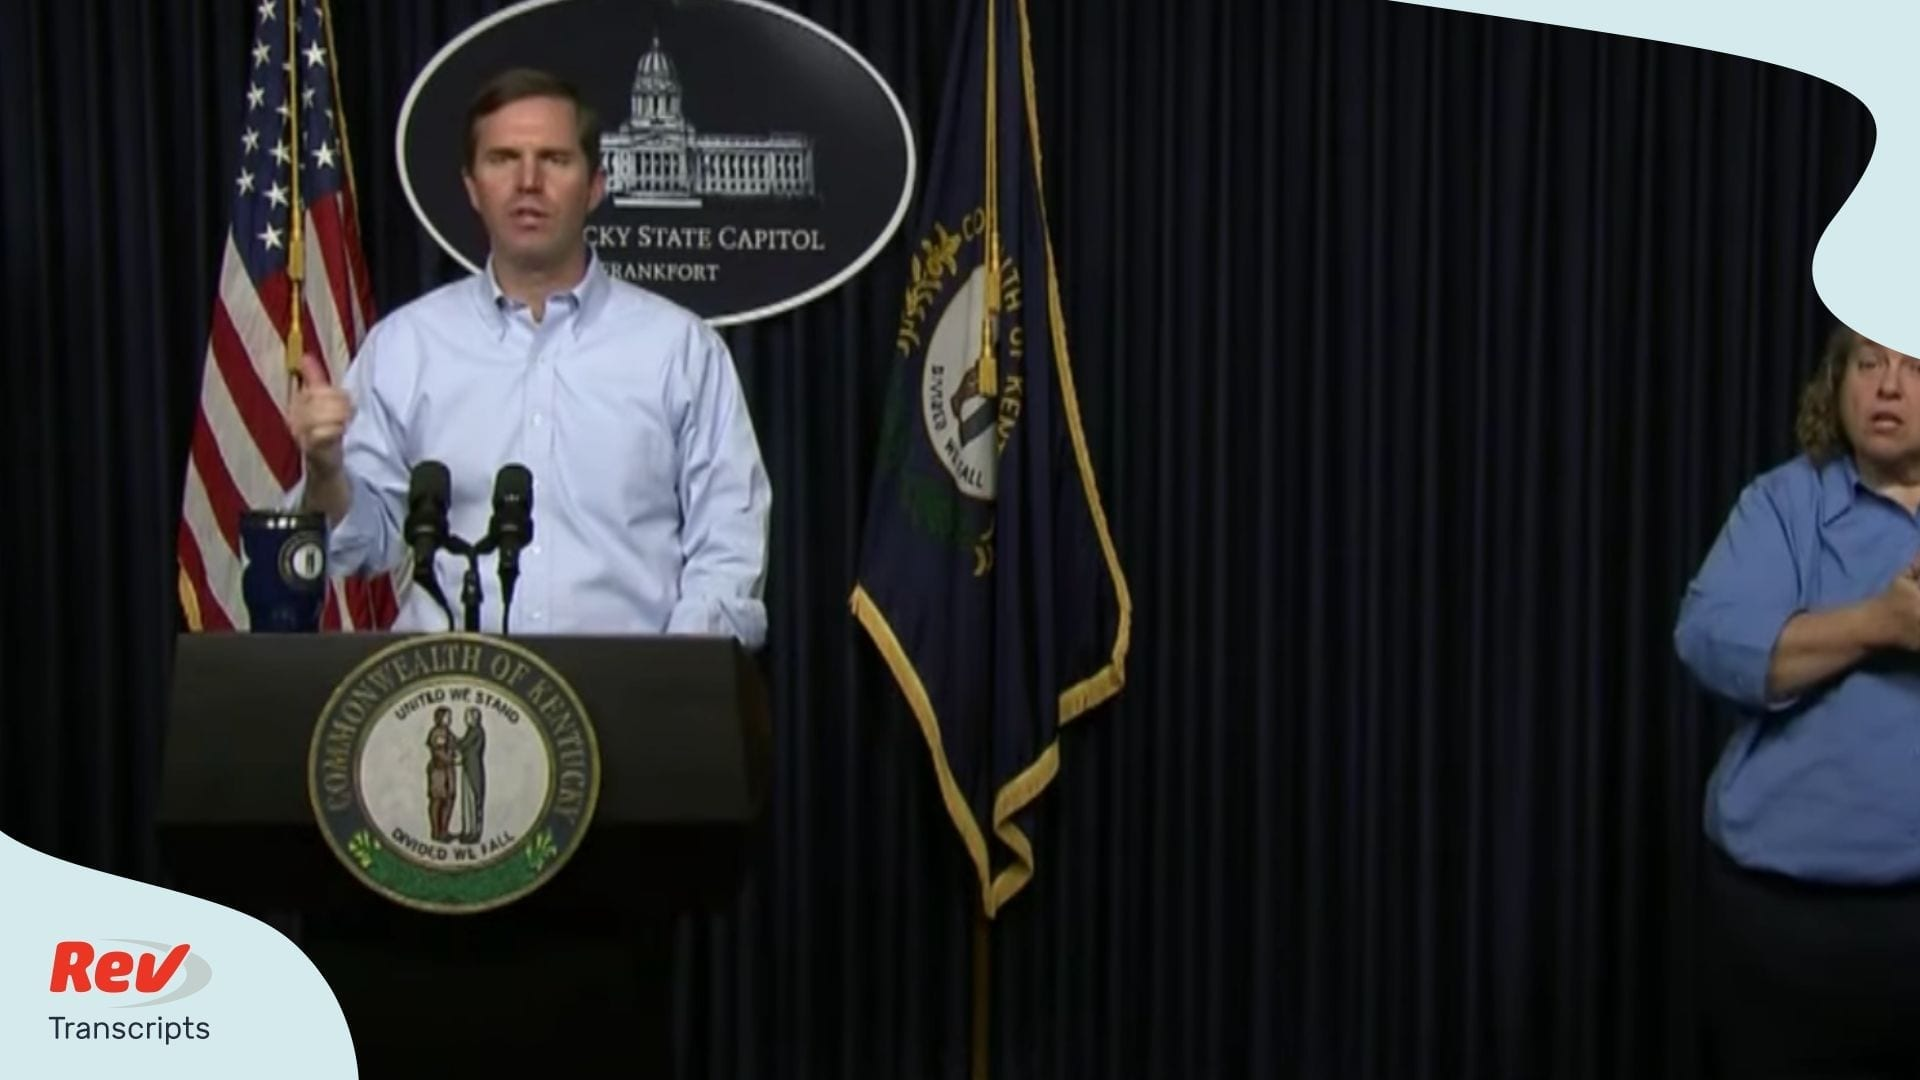 Kentucky Governor COVID-19 Briefing